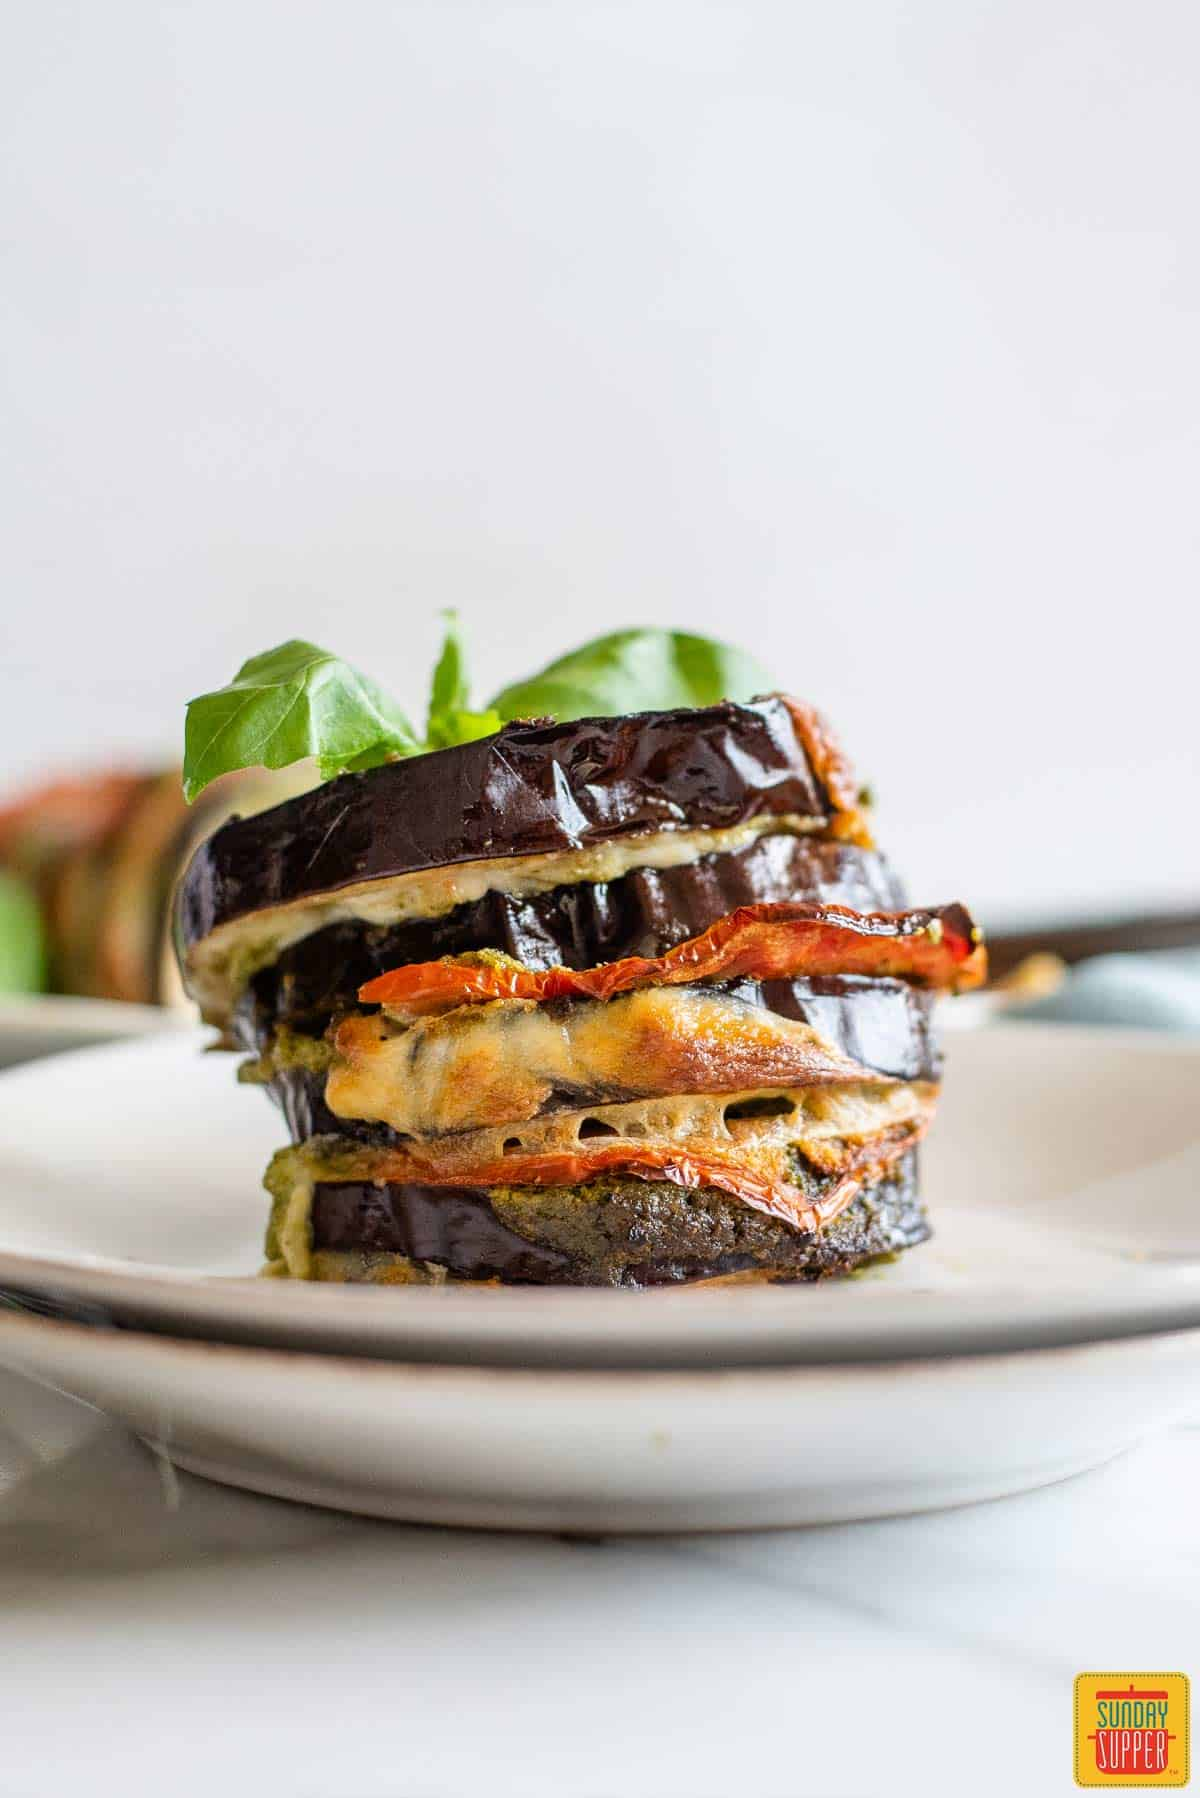 Slices of roasted eggplant stacked on top of each other stuffed with caprese and topped with basil